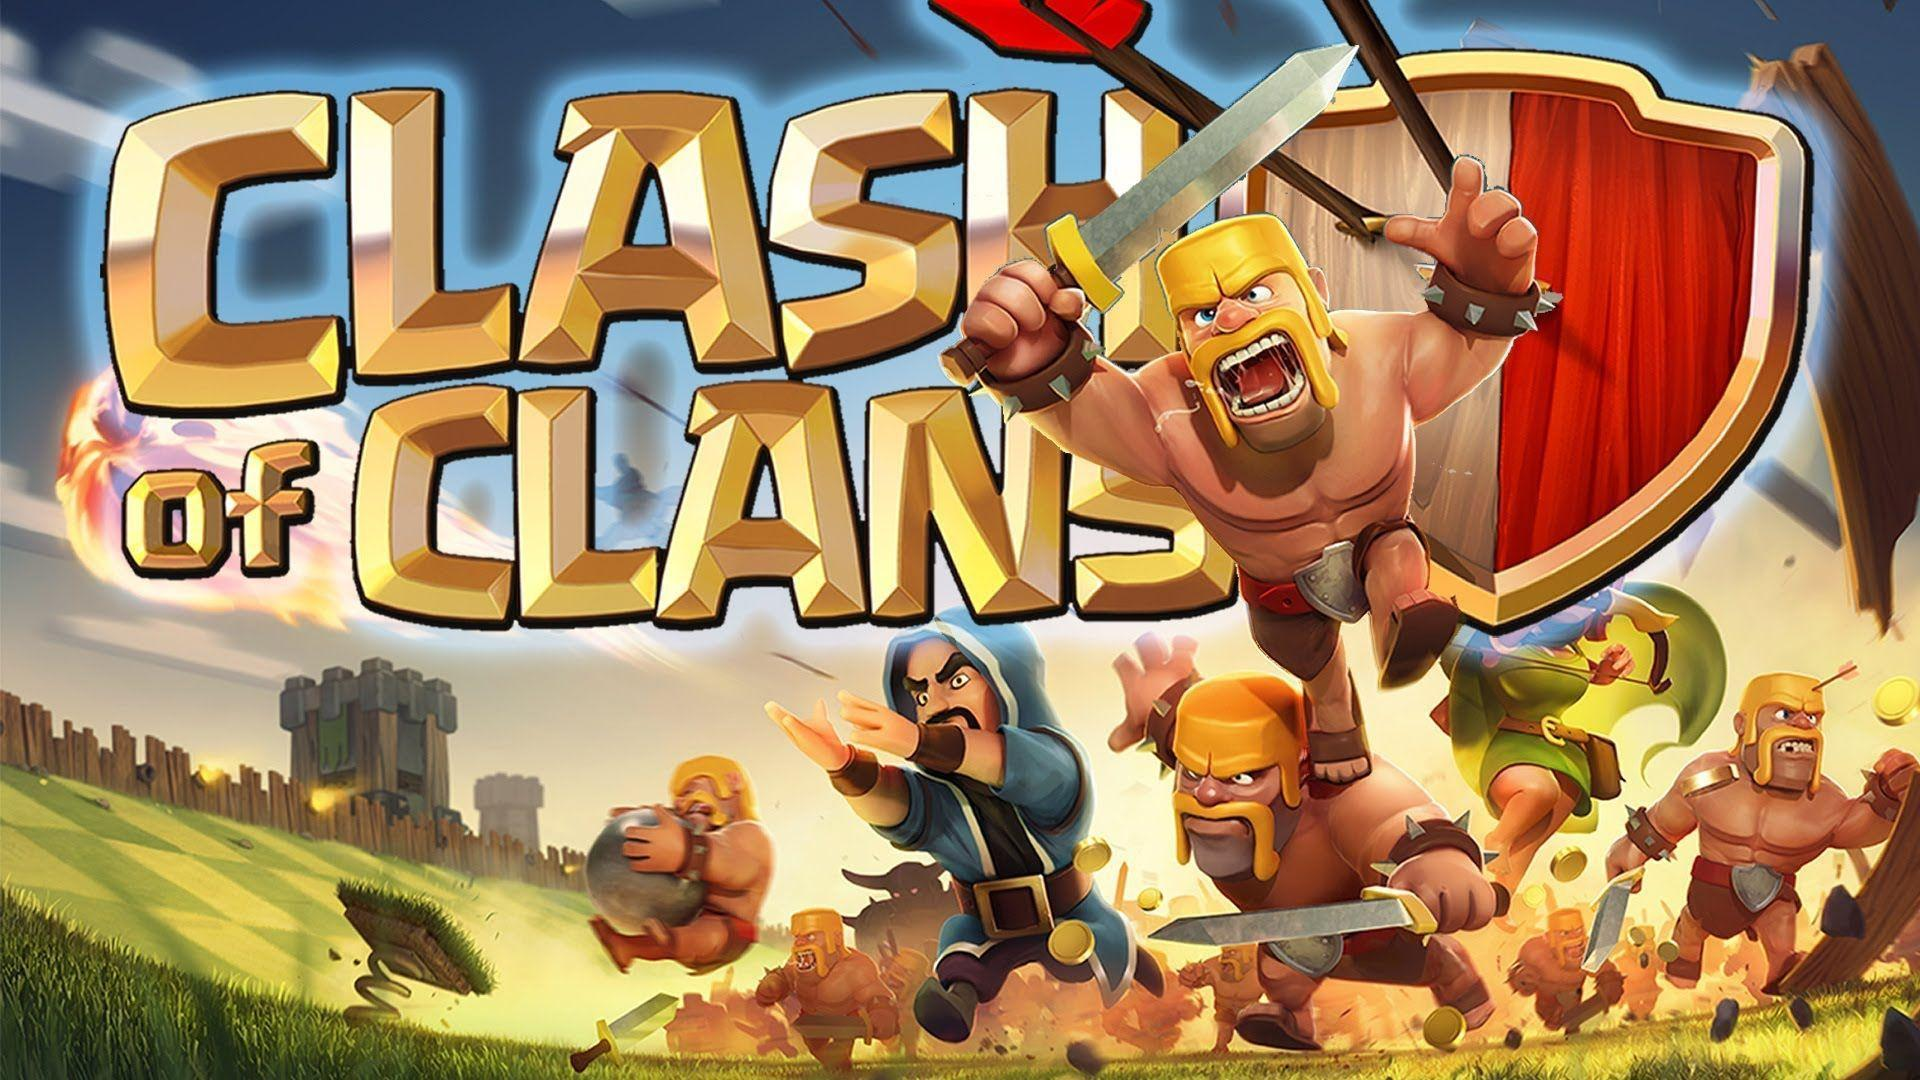 Clash Of Clans Wallpapers | WeNeedFun